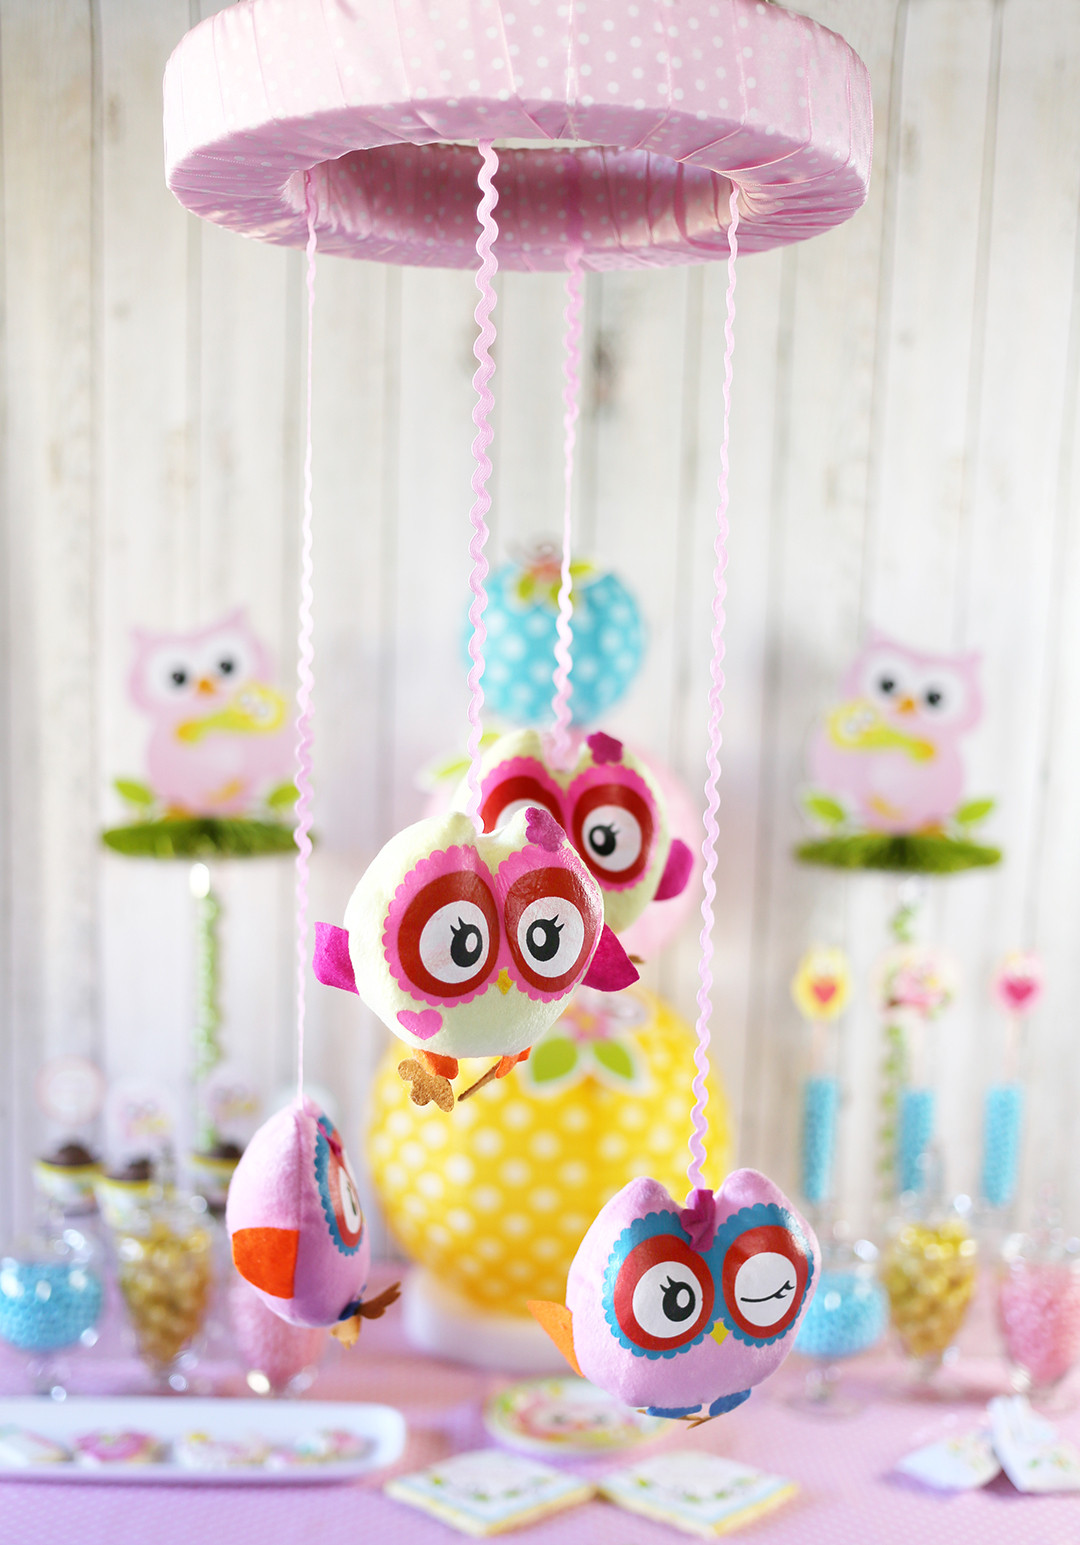 DIY Owl Baby Shower Decorations  Cute Owl Baby Shower Ideas